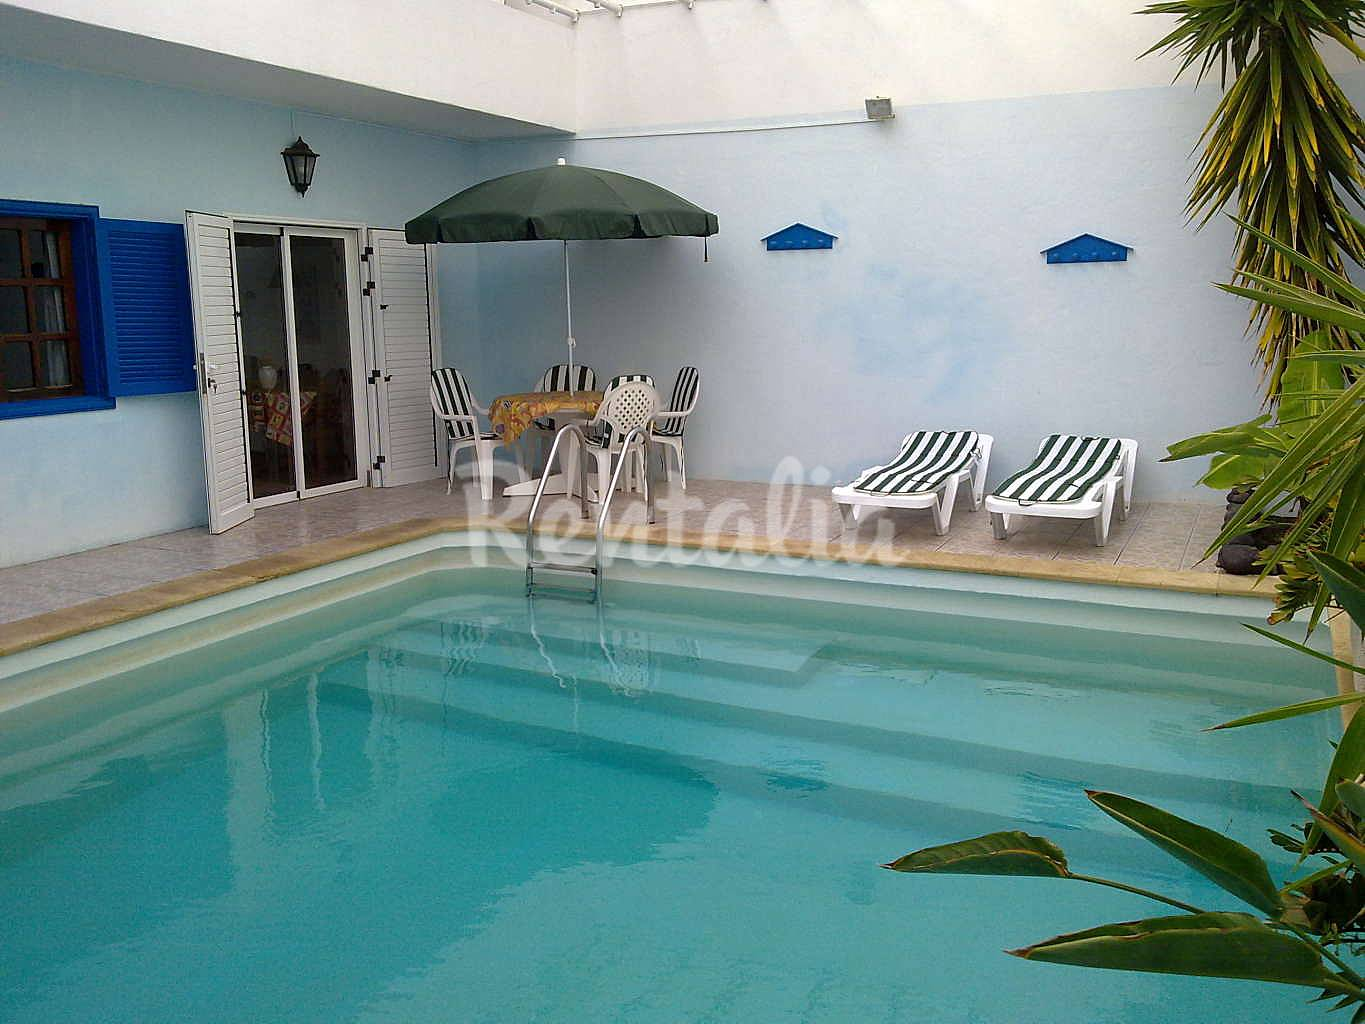 Casa con piscina privada cerca de la playa wifi famara for Villas en lanzarote con piscina privada